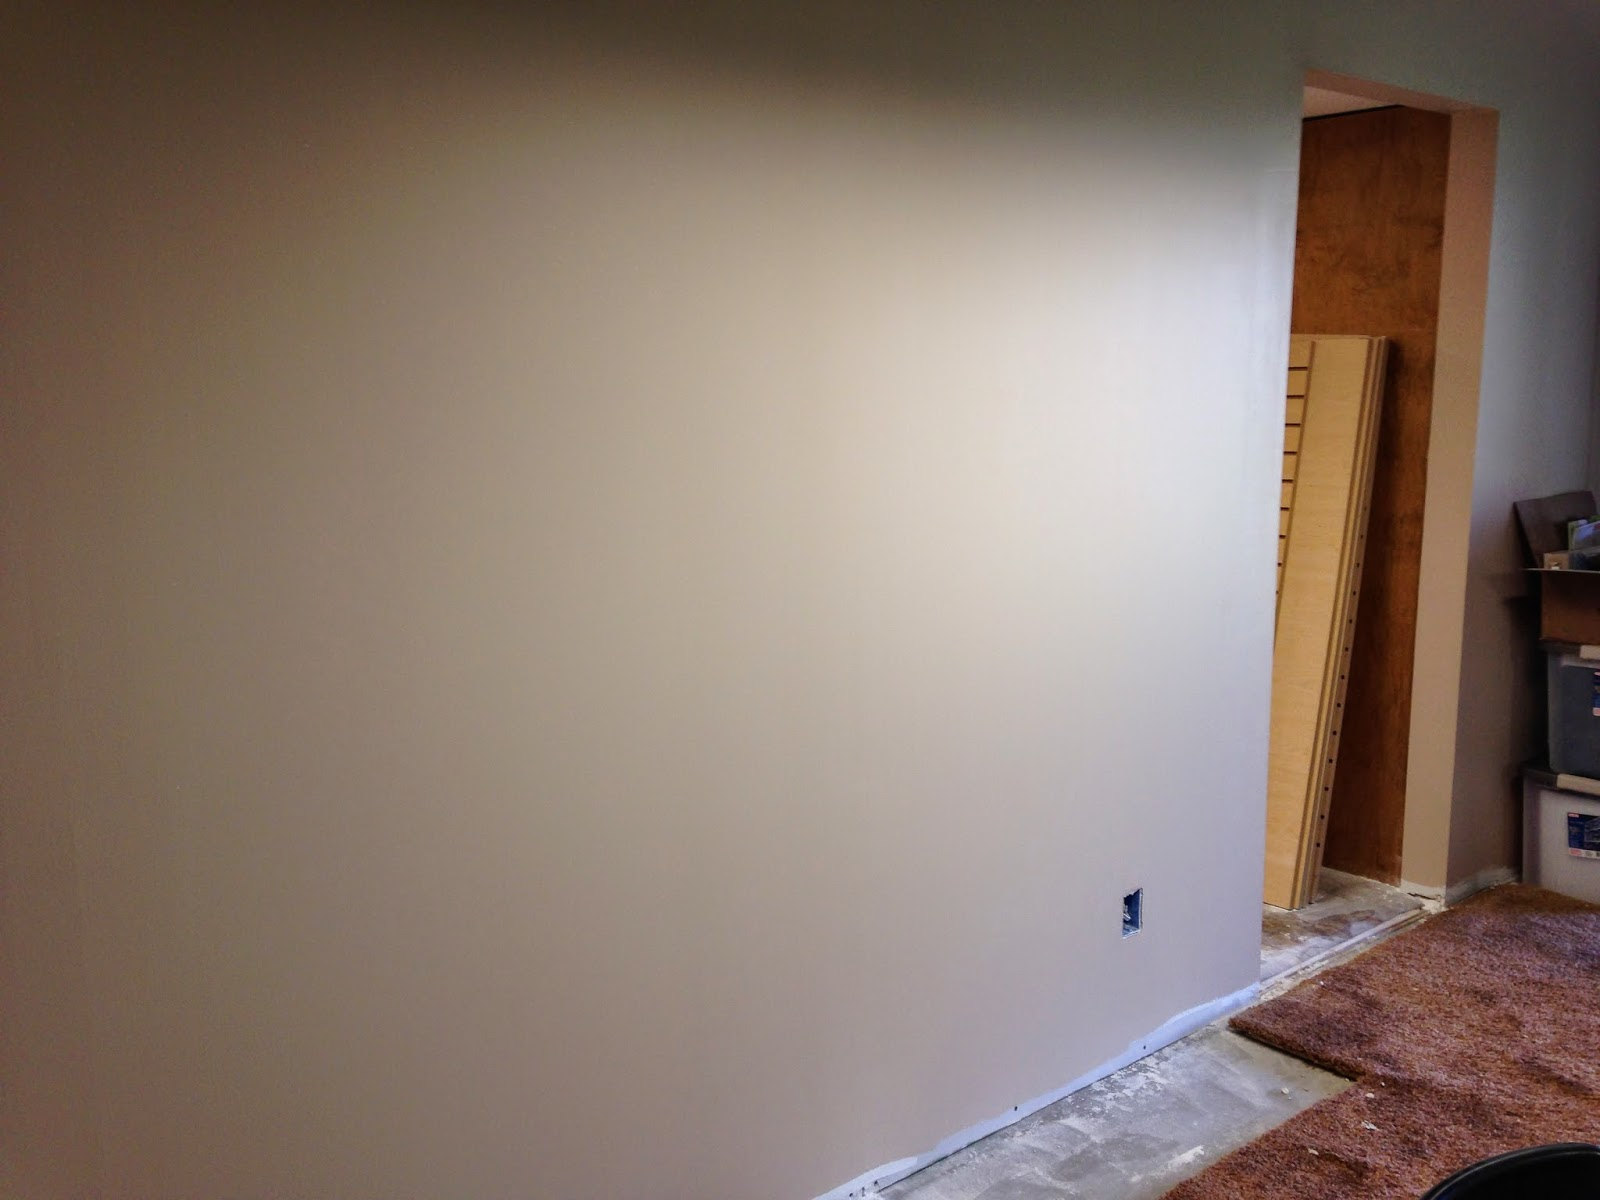 Christi S Creative Crew Remodel Update And A Card Of Course